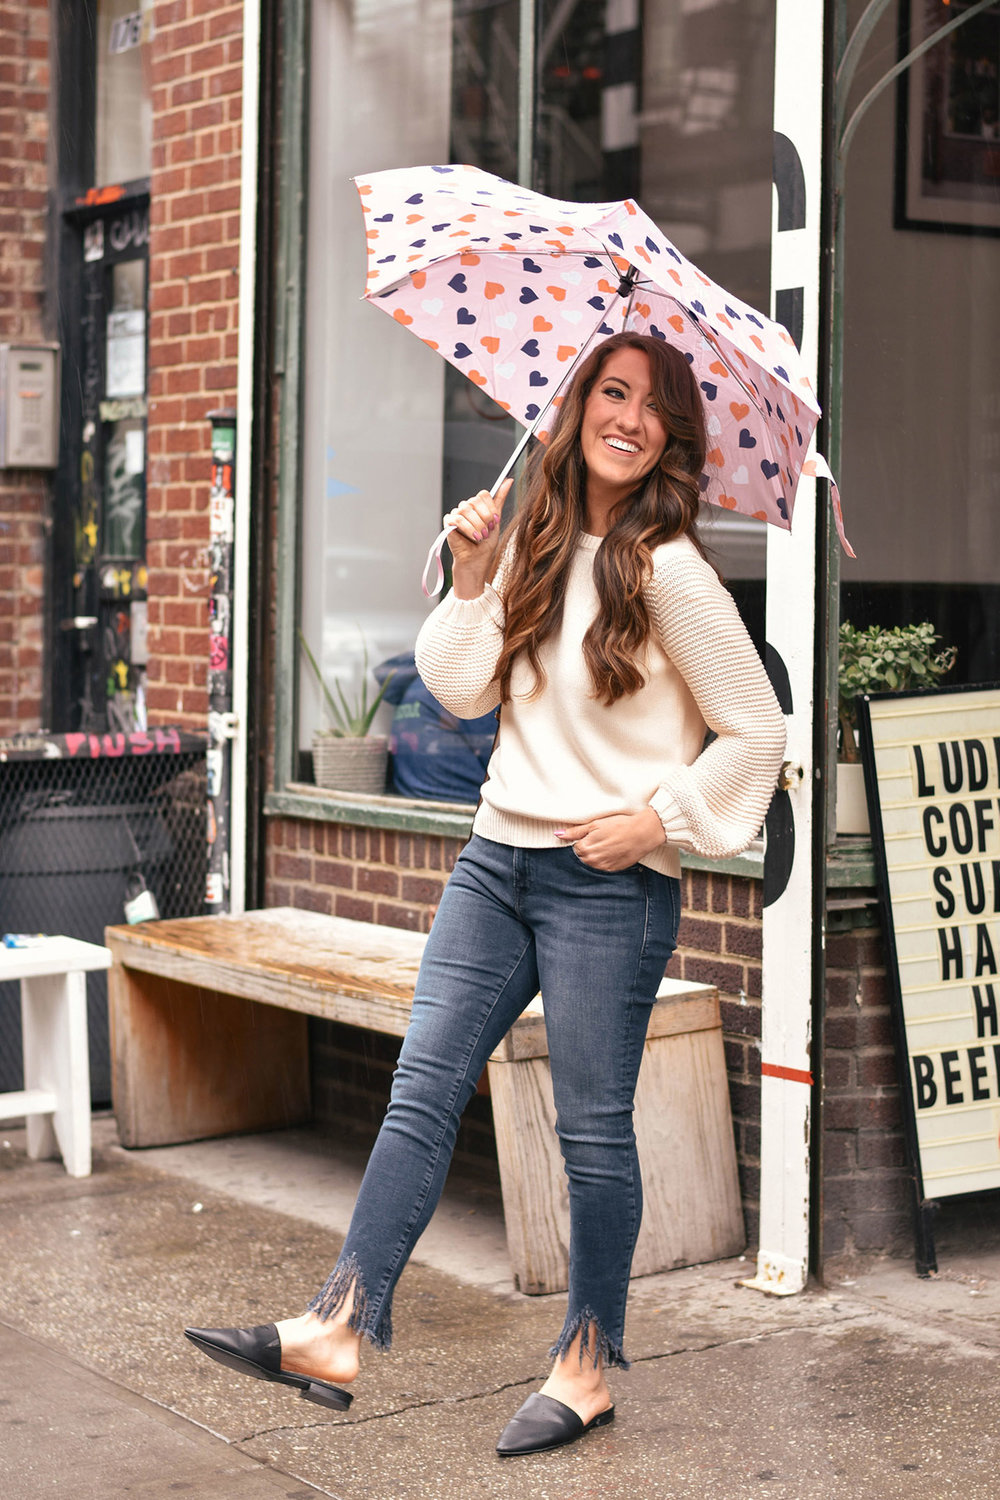 Lily & Sparrow Boutique sweater  //  denim  // Target mules [ similar  /  heeled version  /  loafer version ] //  umbrella